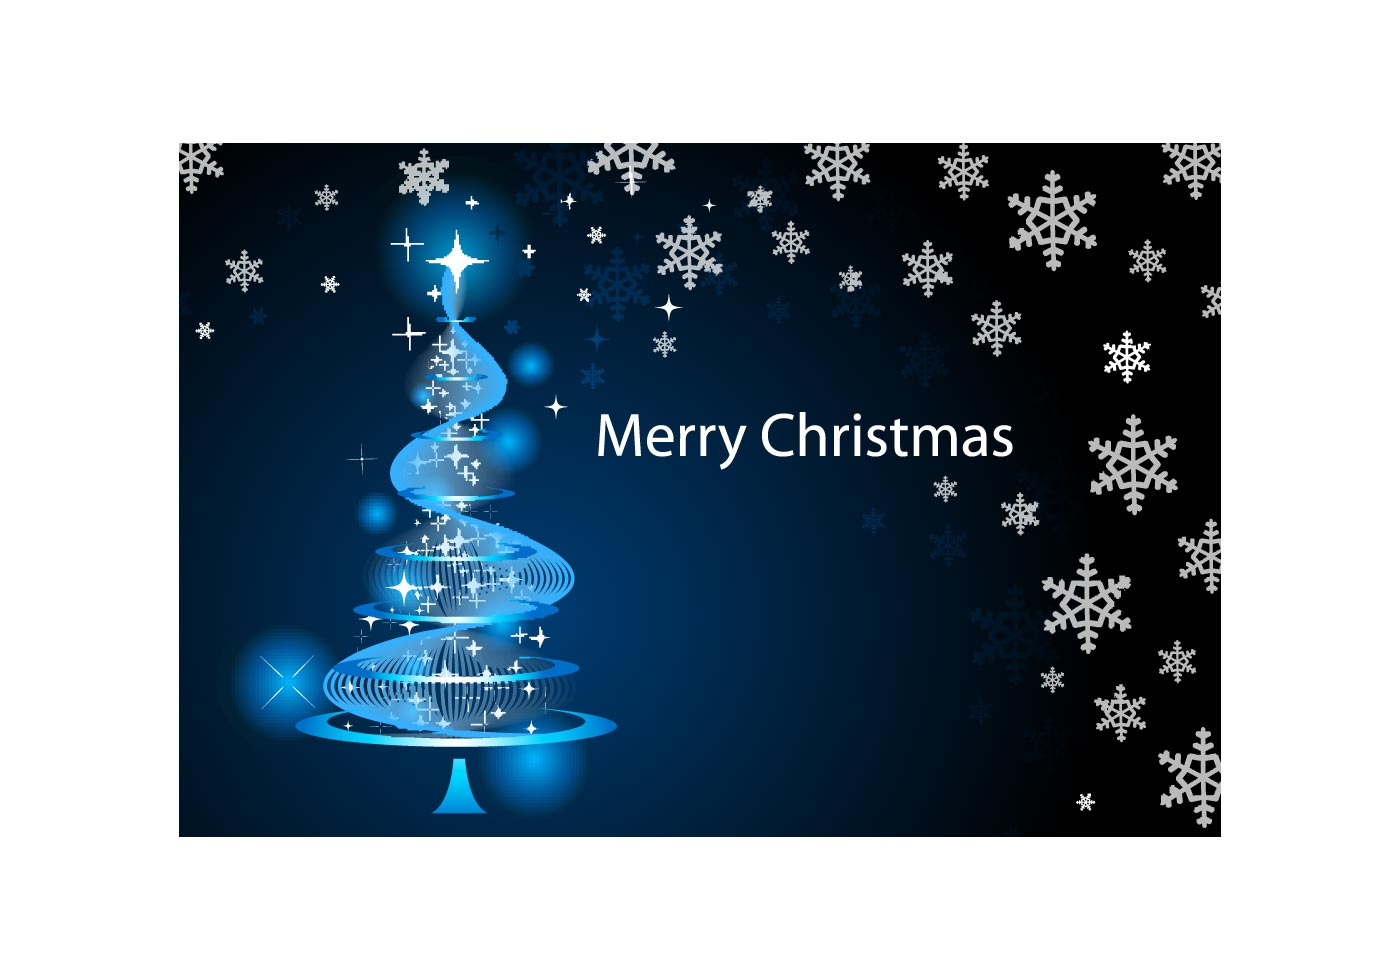 Merry Christmas Wallpaper Download Free Vector Art